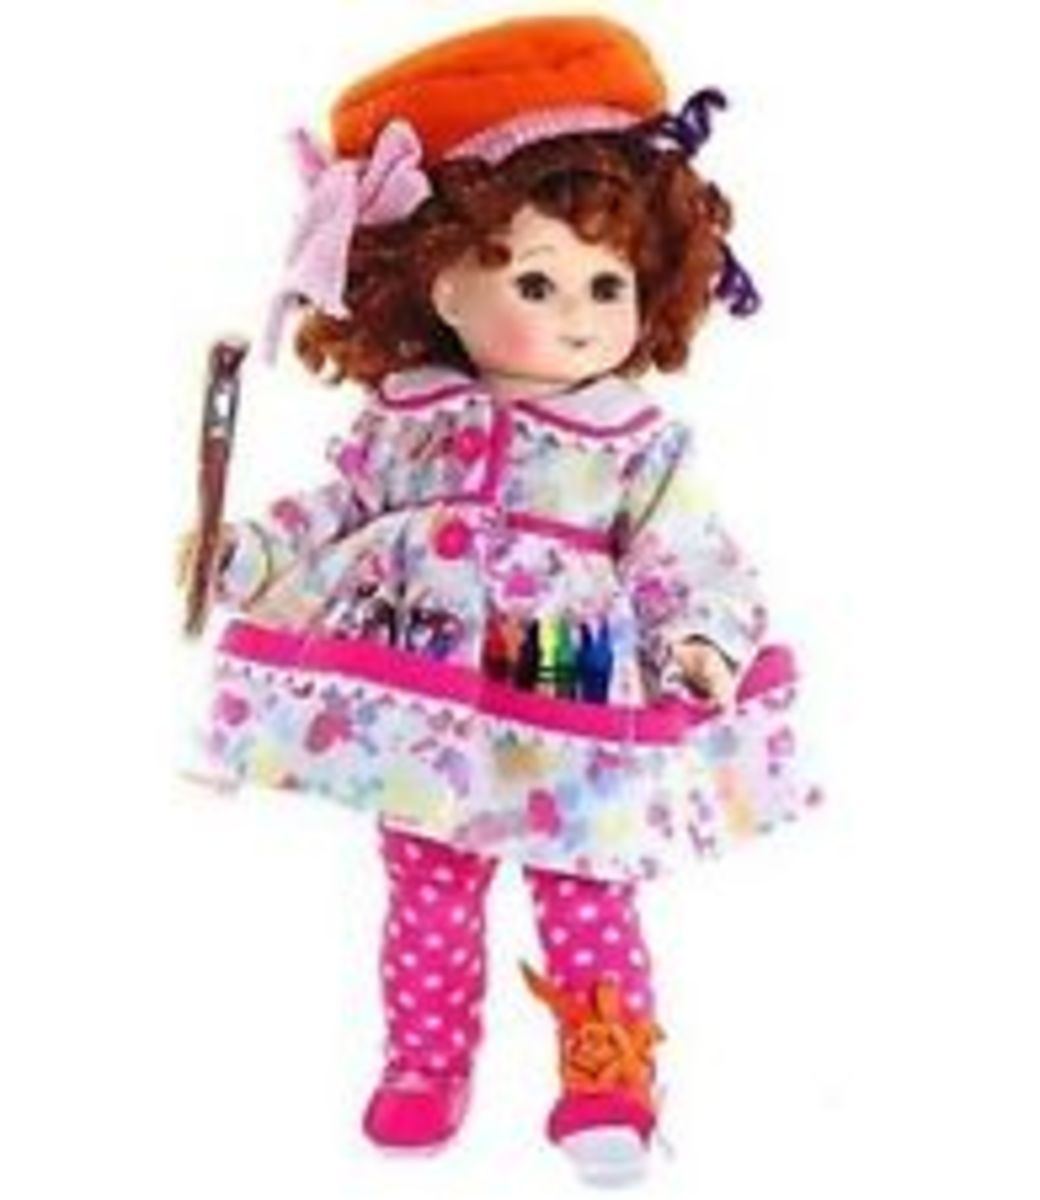 Google images of Fancy Nancy Aspiring Artist